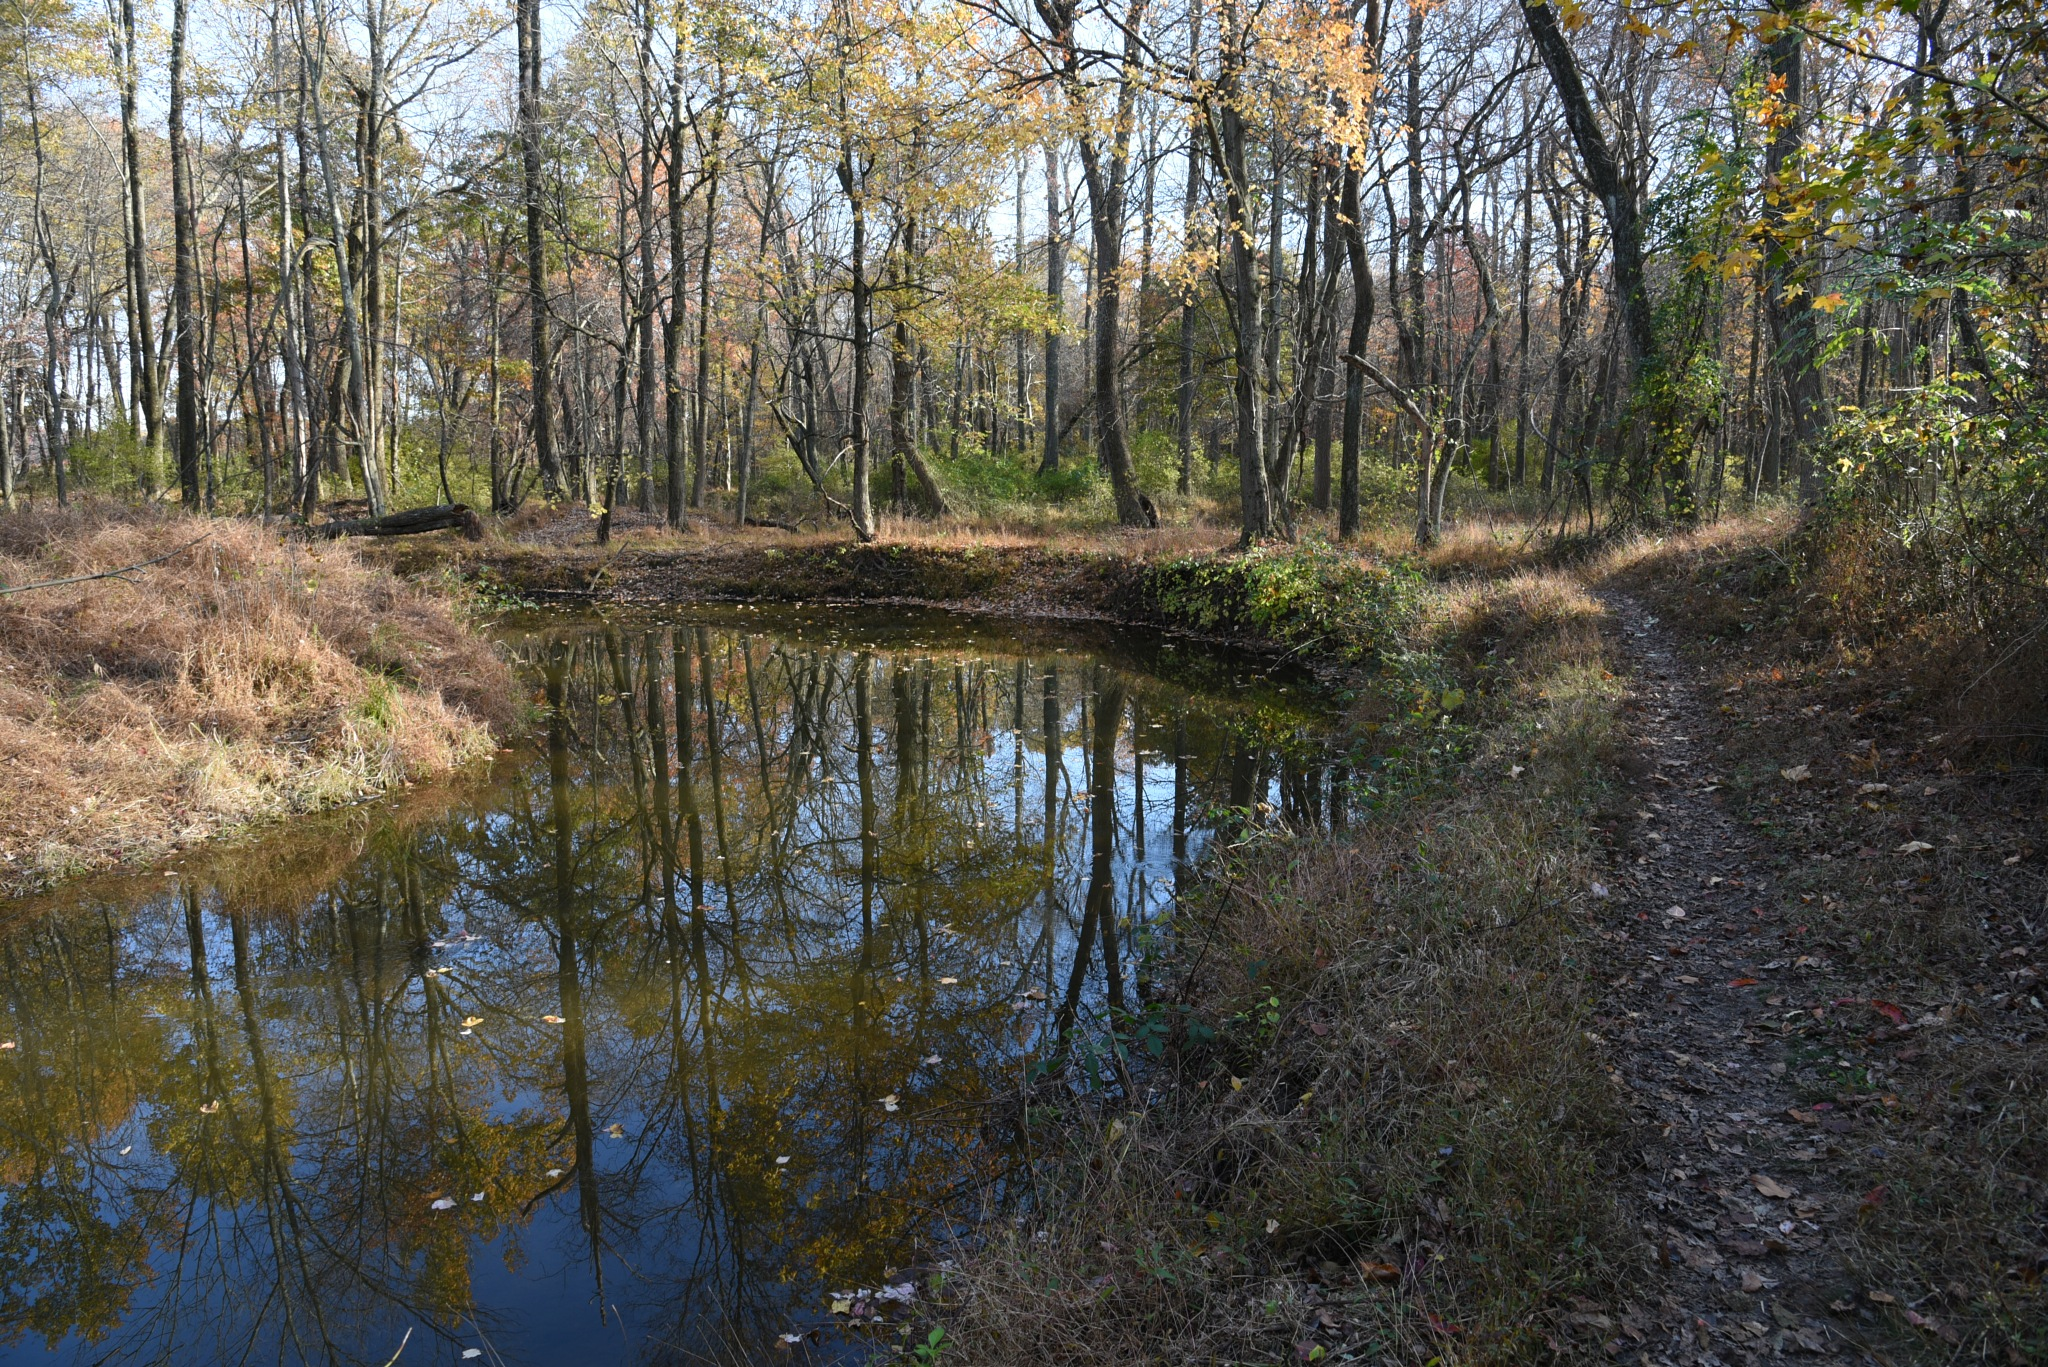 Van Nest Wildlife Refuge - A curve in the stream with trees reflected in the water by Vizzpat